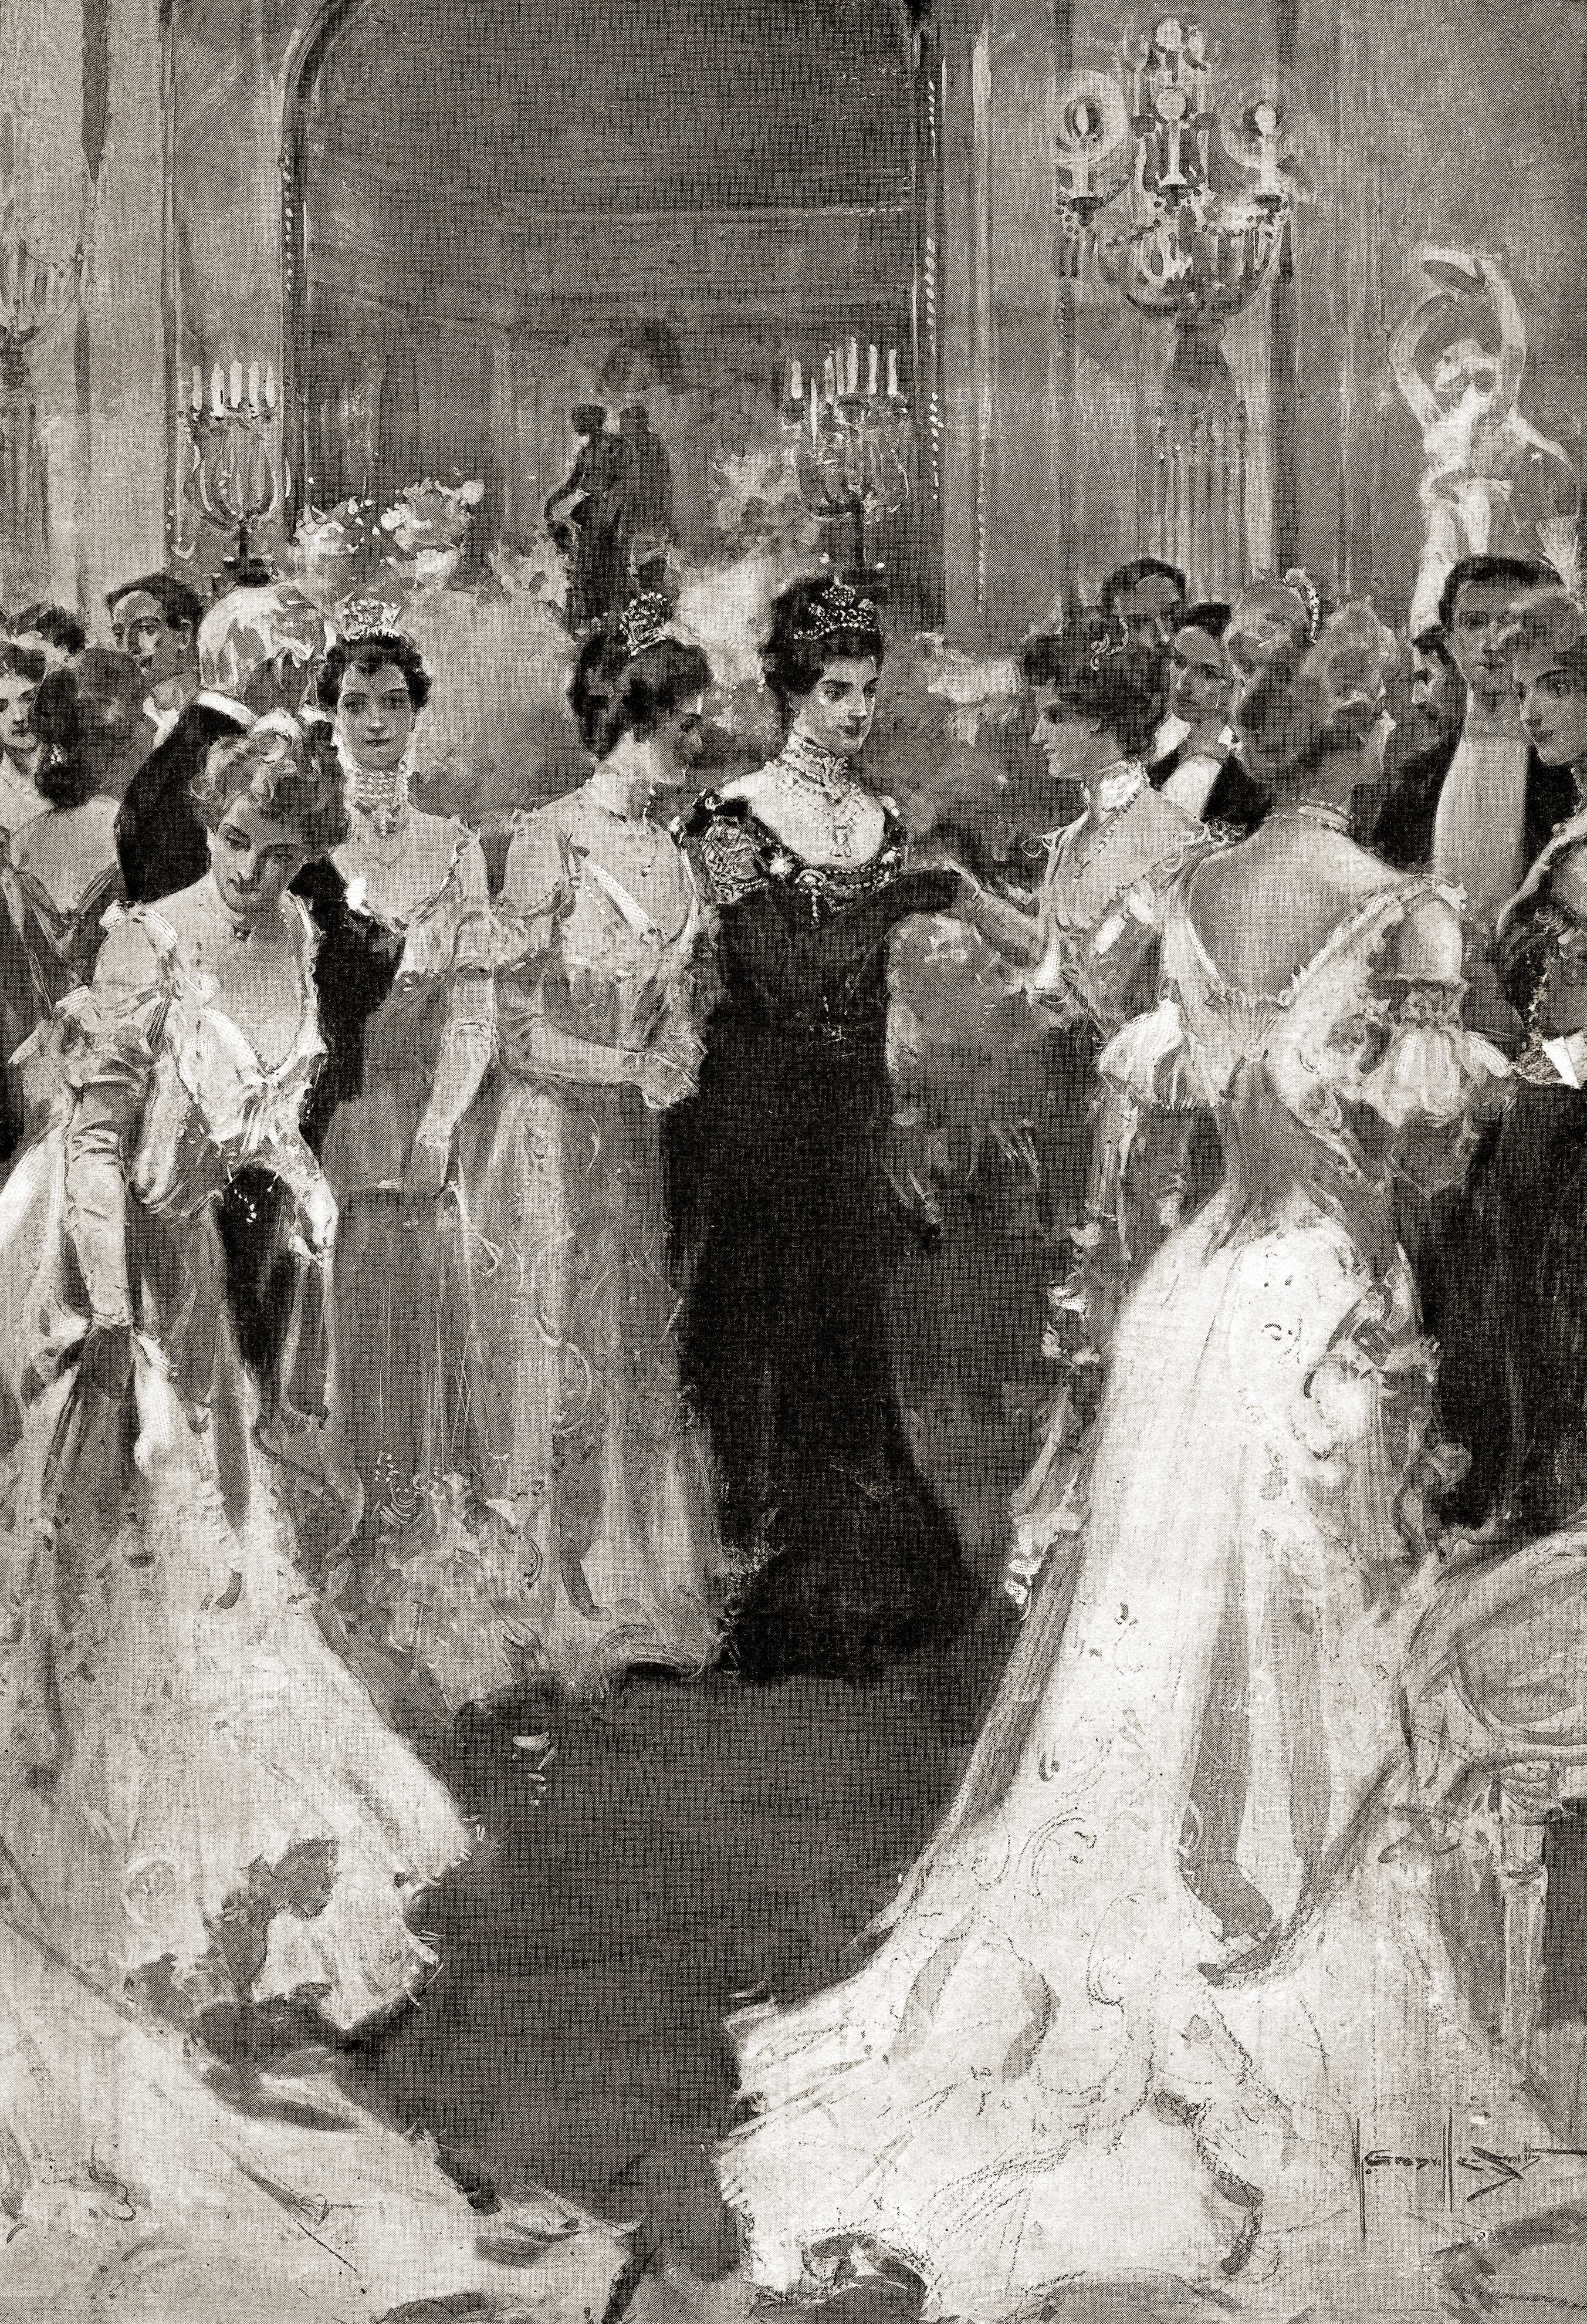 Mrs Astor Greeting Guests at her Ball